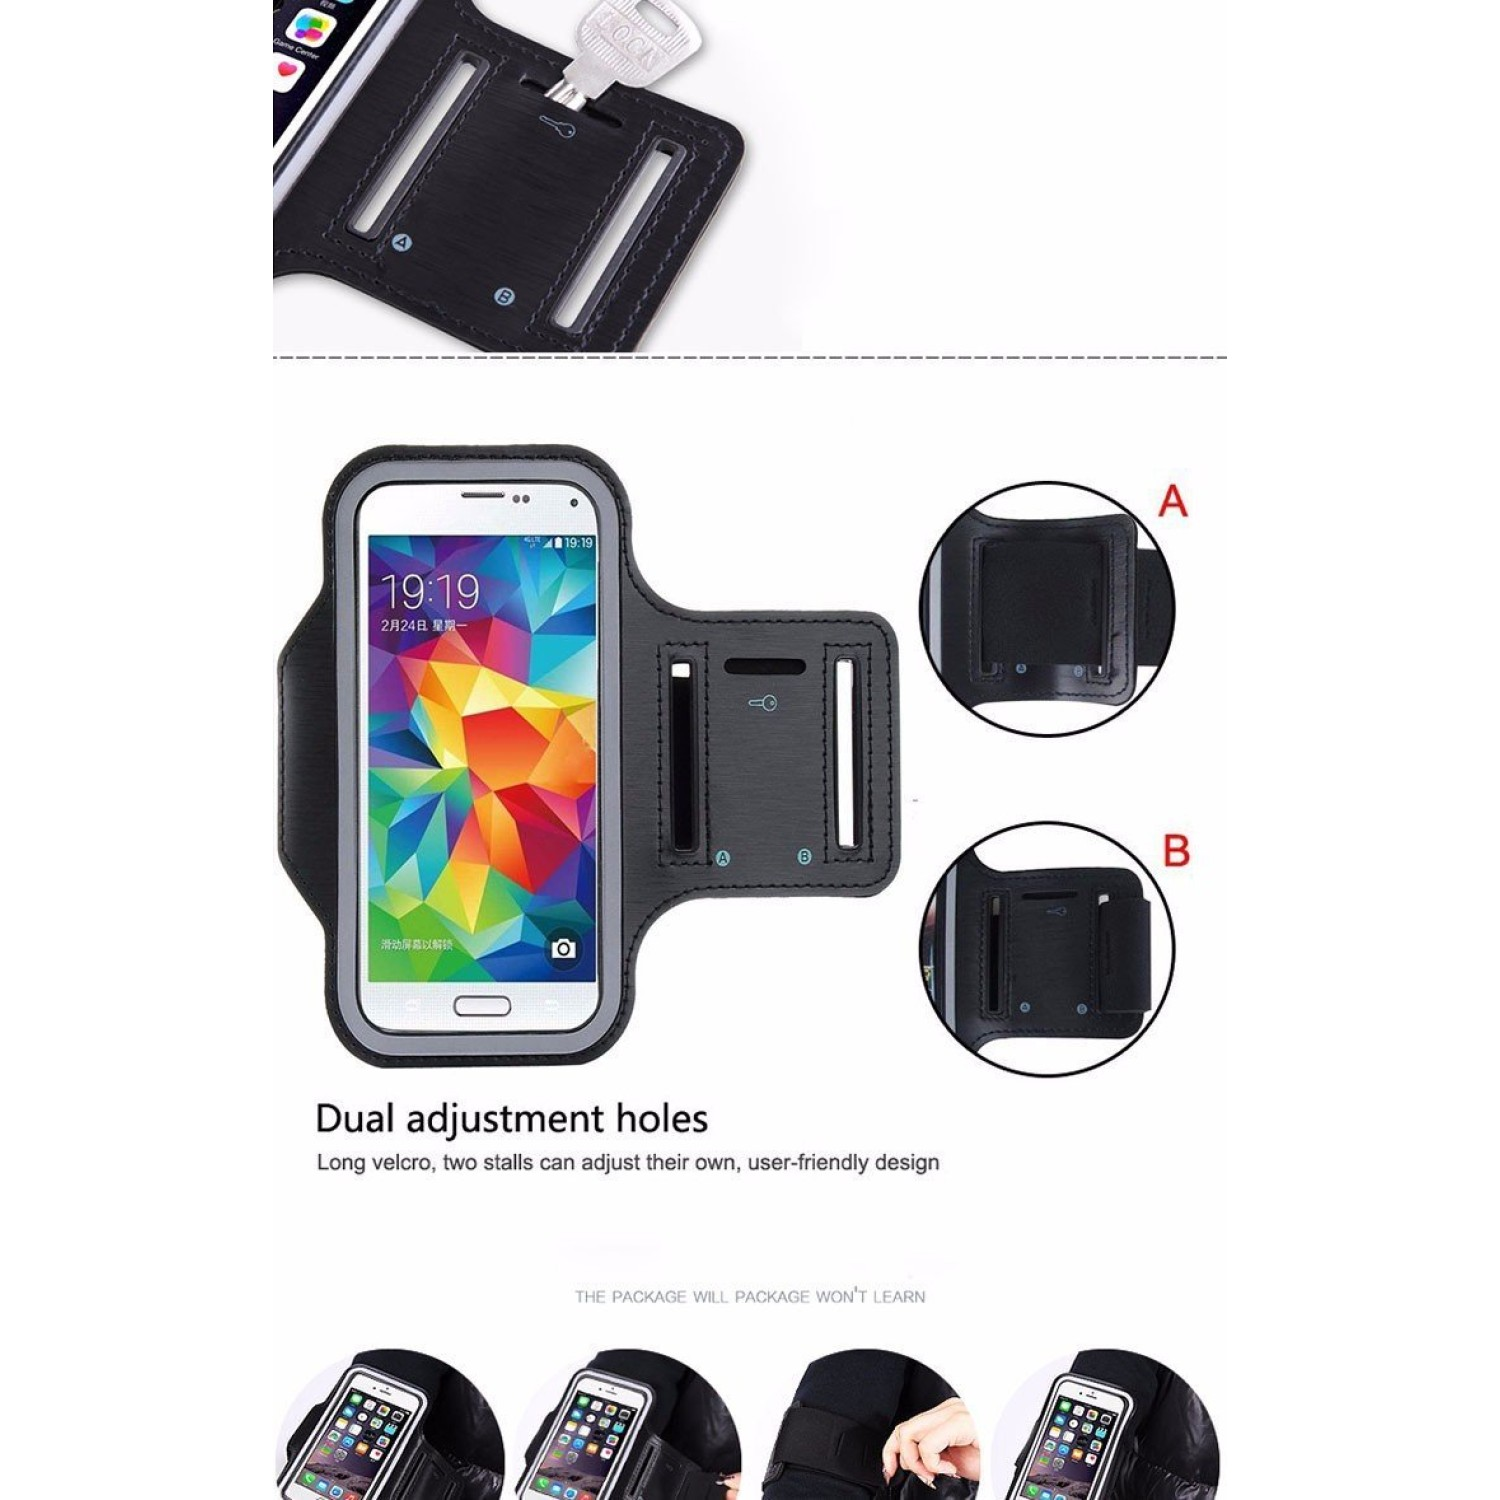 online retailer 02174 32587 Samsung Galaxy S3/S4 Protective Armband Build in Key,with Credit ...